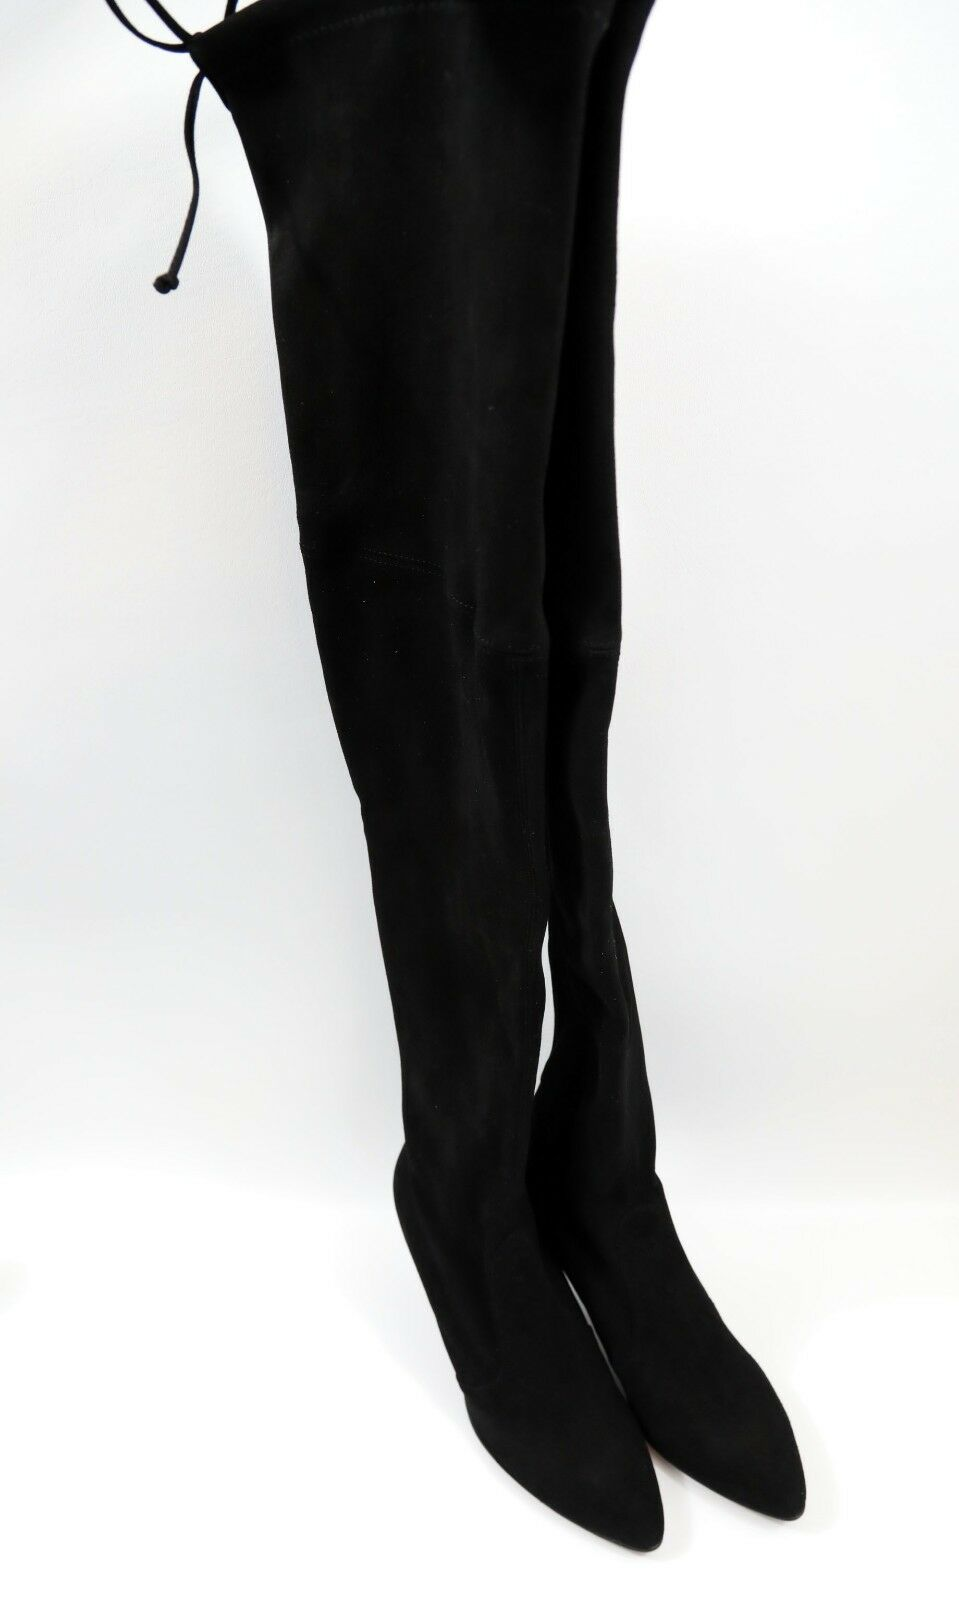 182 Stuart Weitzman Tiemodel Over-the-Knee Stretch Boot Size 10  RETAIL  798